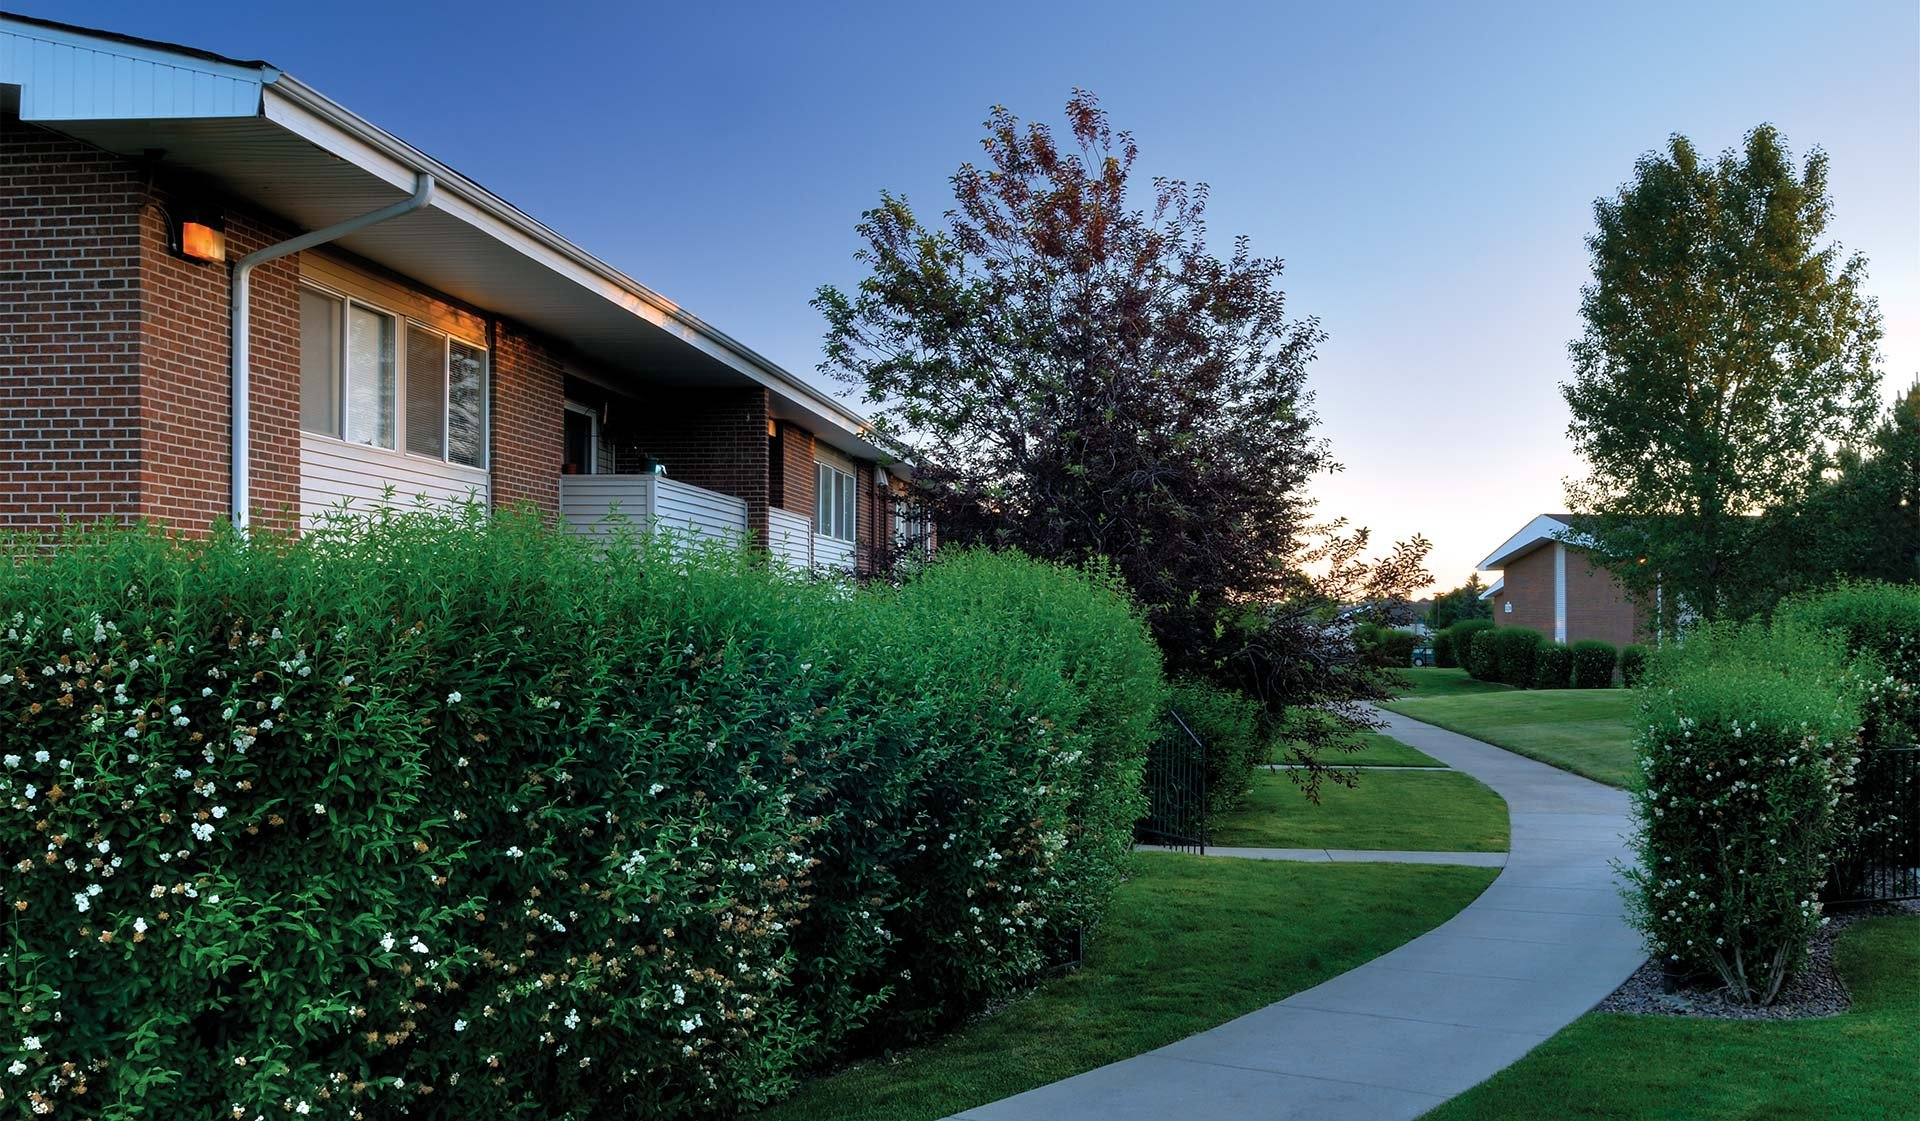 Meadow Creek Apartments - Exterior Walking Path - Boulder, Co